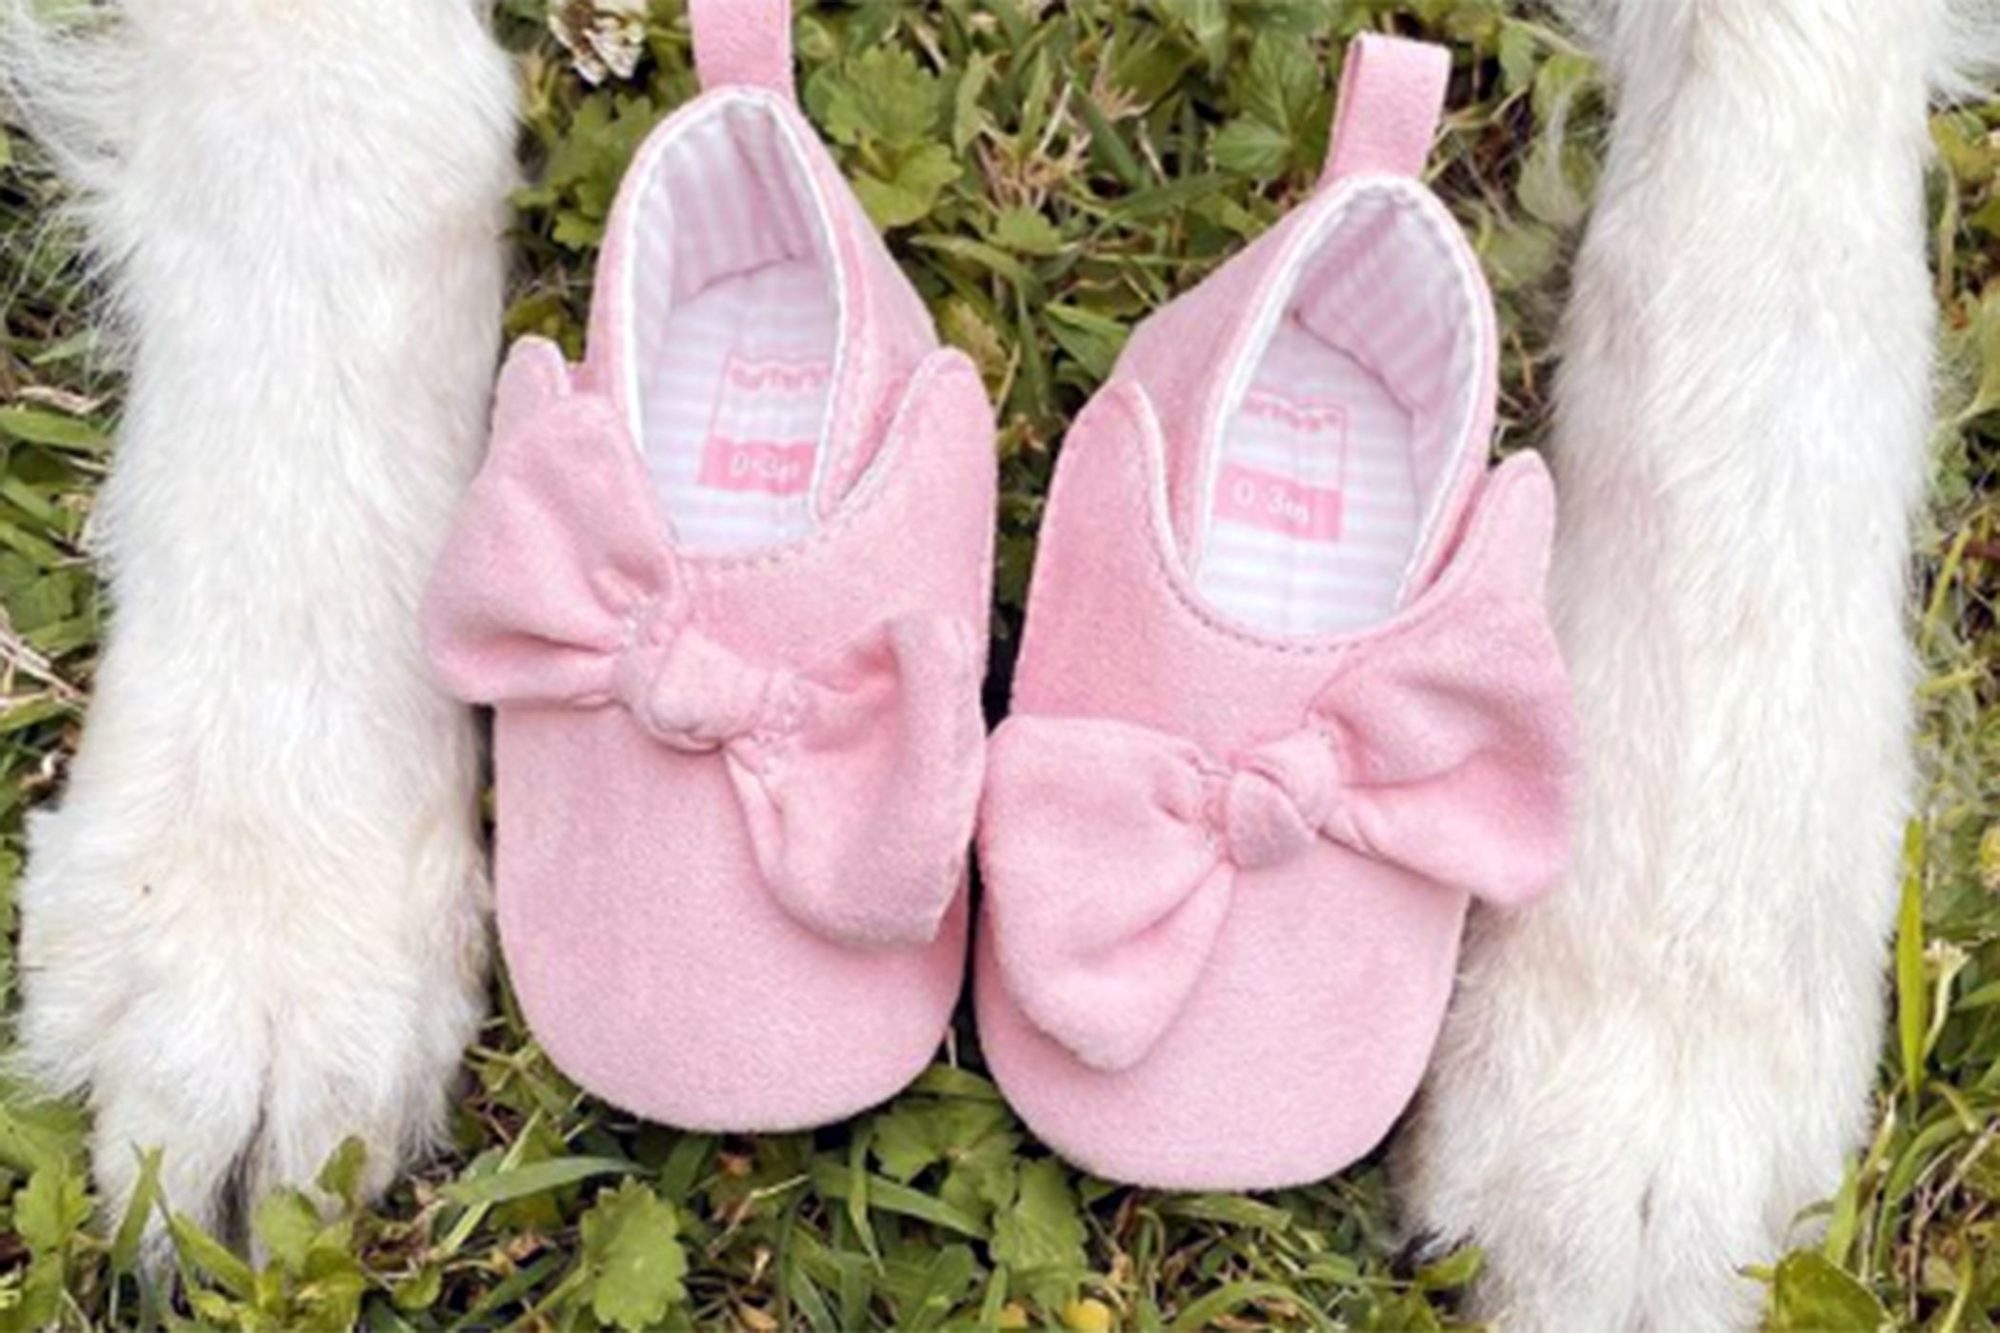 pink baby booties and paws image for a pregnancy announcement